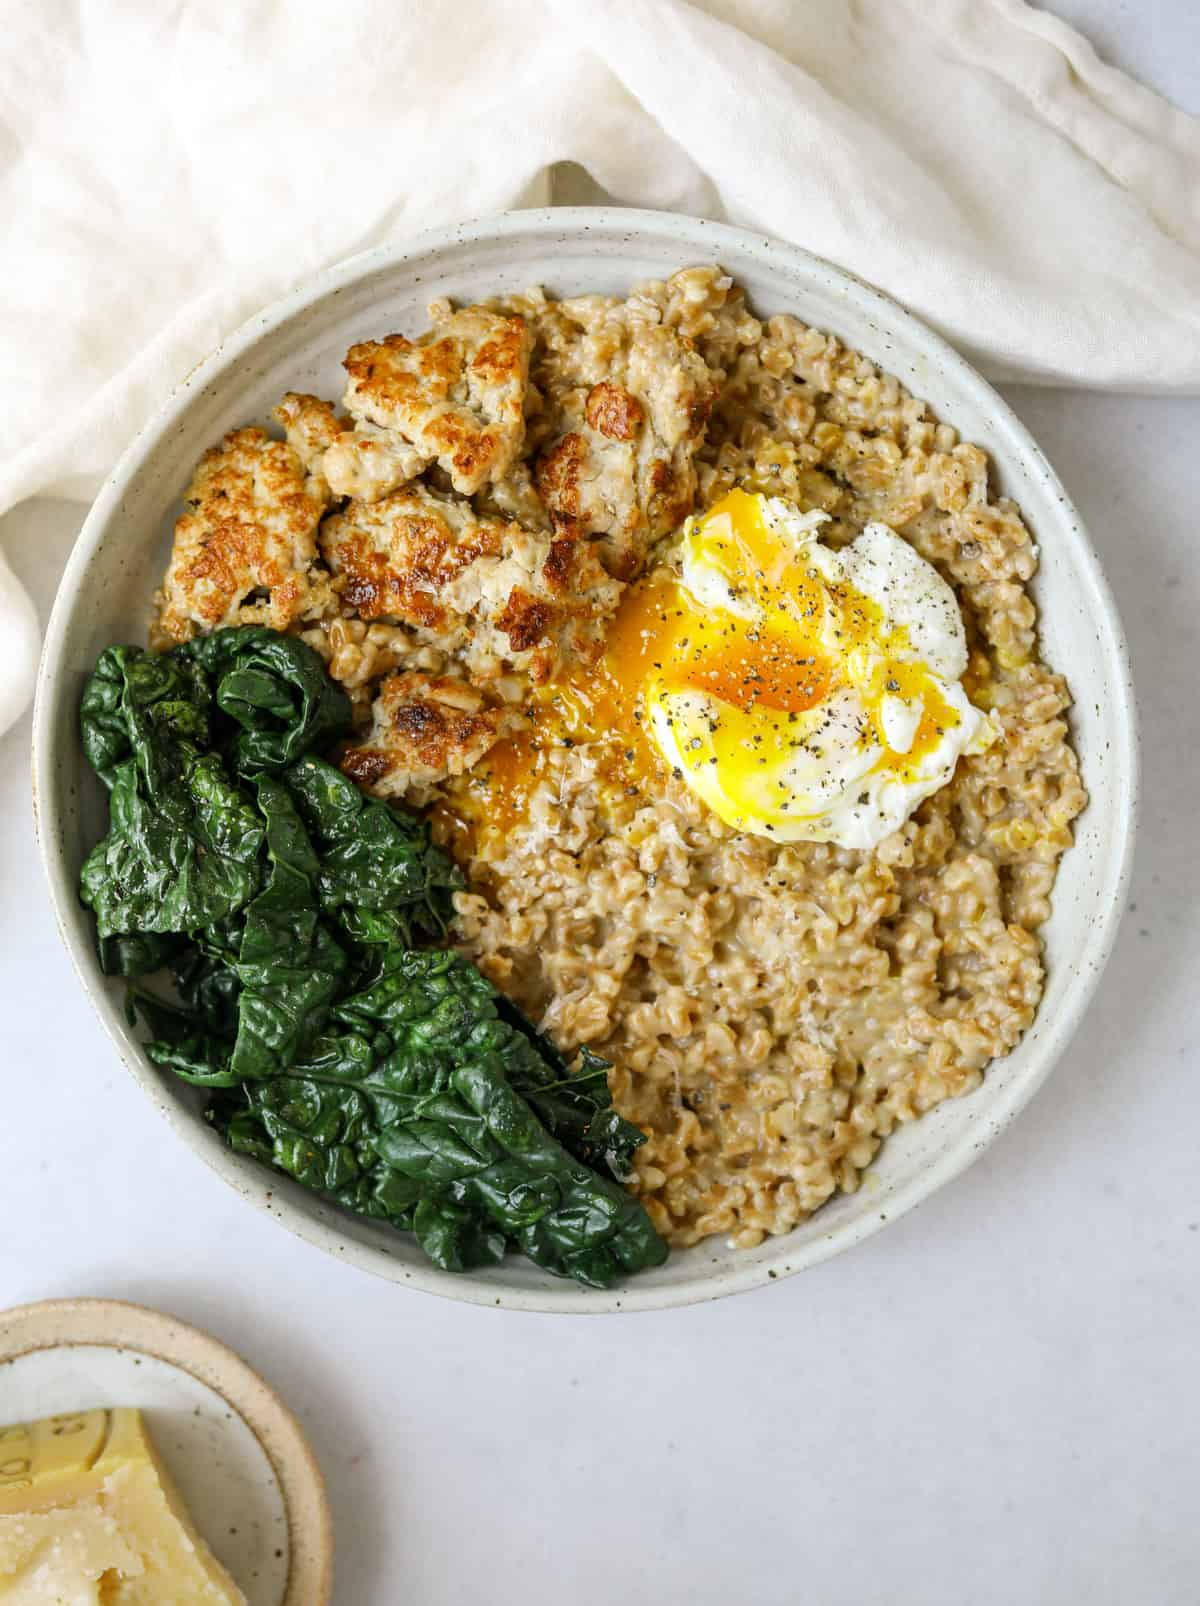 a bowl of savory farro porridge with a poached egg, kale and sausage